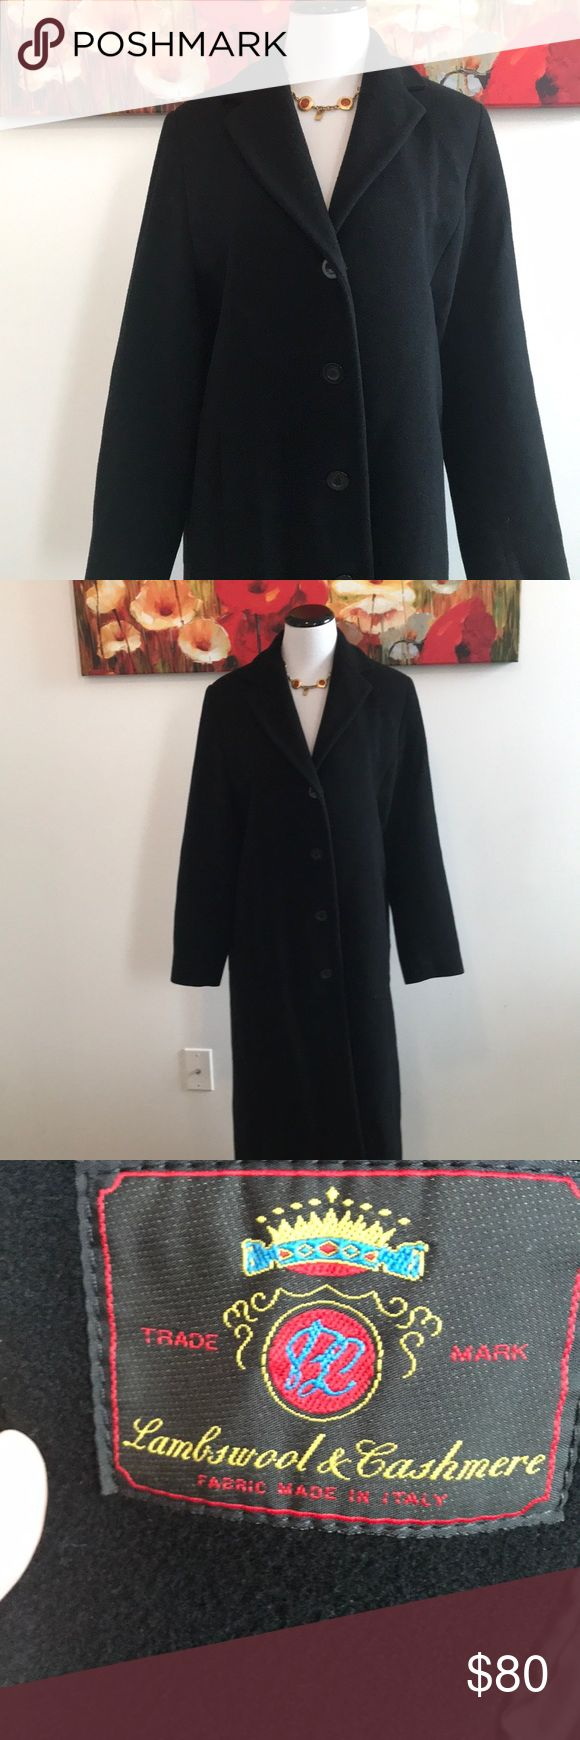 Vintage Bill Blass Cashmere/Wool Coat This coat is in such good vintage condition. It's a sophisticated and classic staple. Shoulder to hem measures approximately 47 inches. Right pocket is sewn shut and shown in pictures (last two pics). Preowned but a wonderful vintage piece. Please feel free to ask any and all questions Bill Blass Jackets & Coats Trench Coats